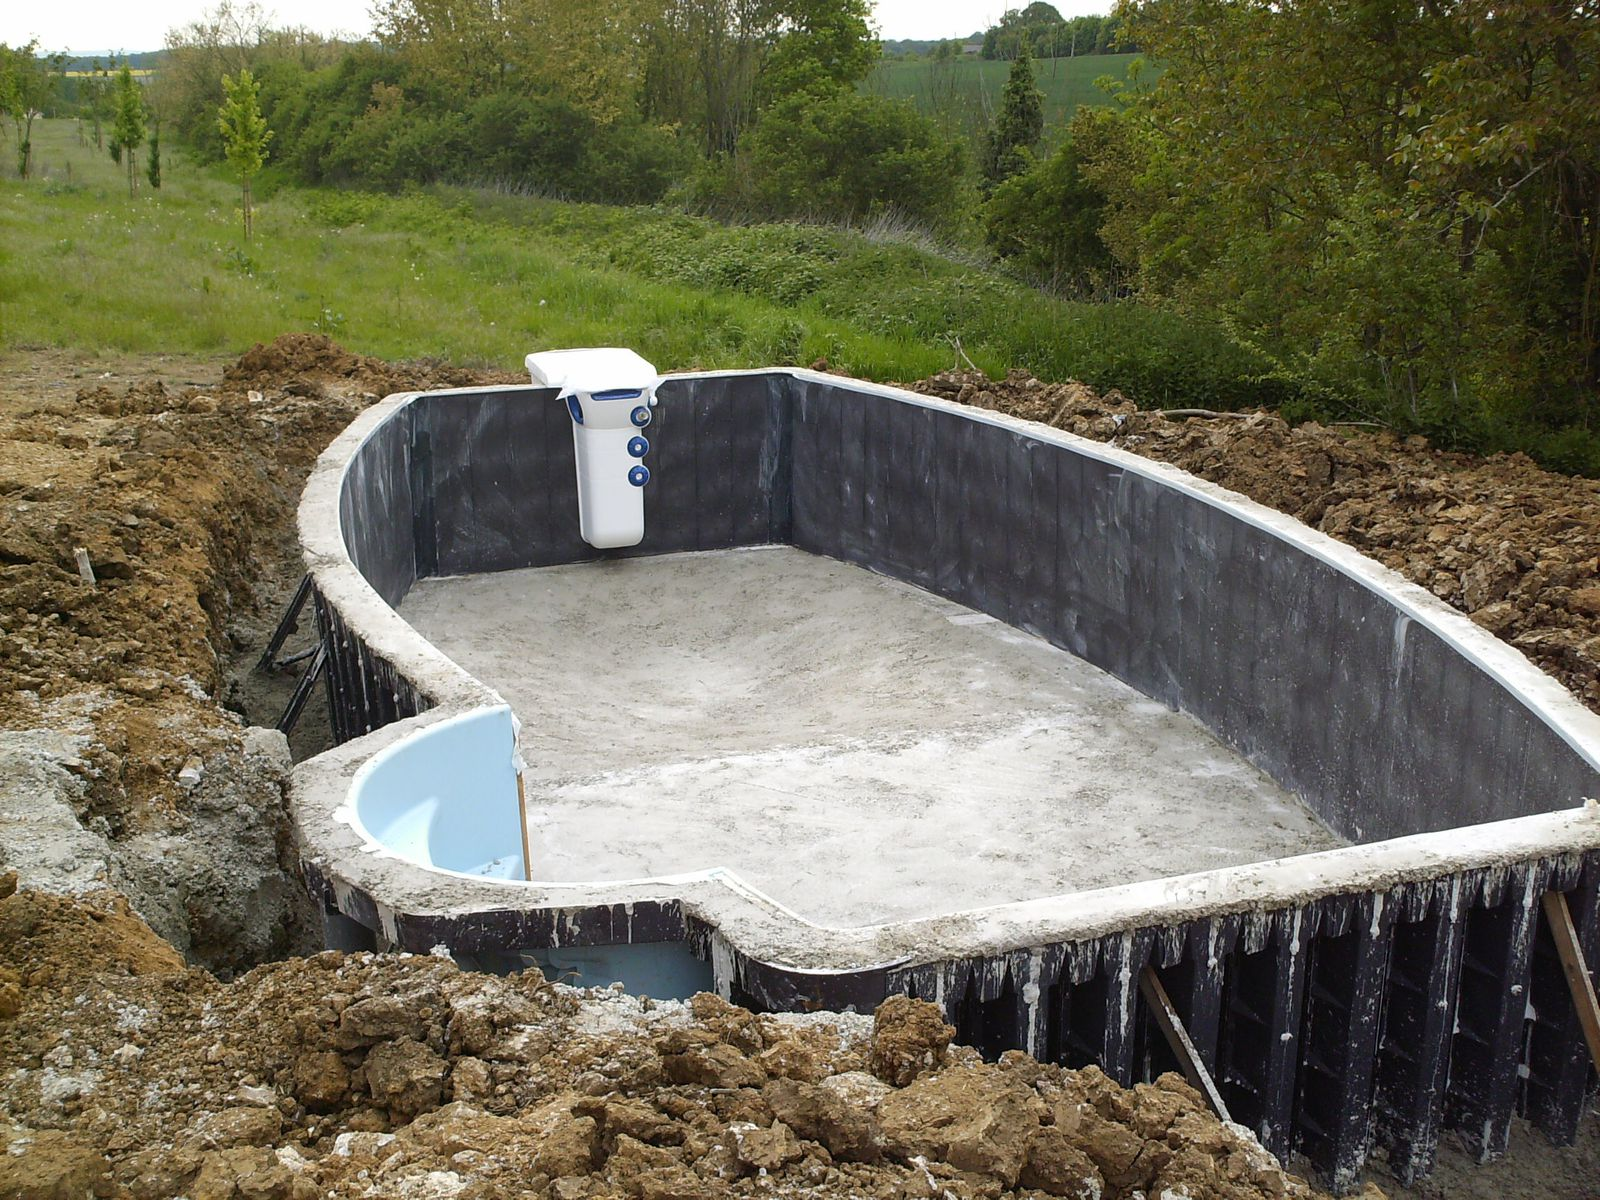 Piscine desjoyaux construction saint etienne 3312 for Piscine construction